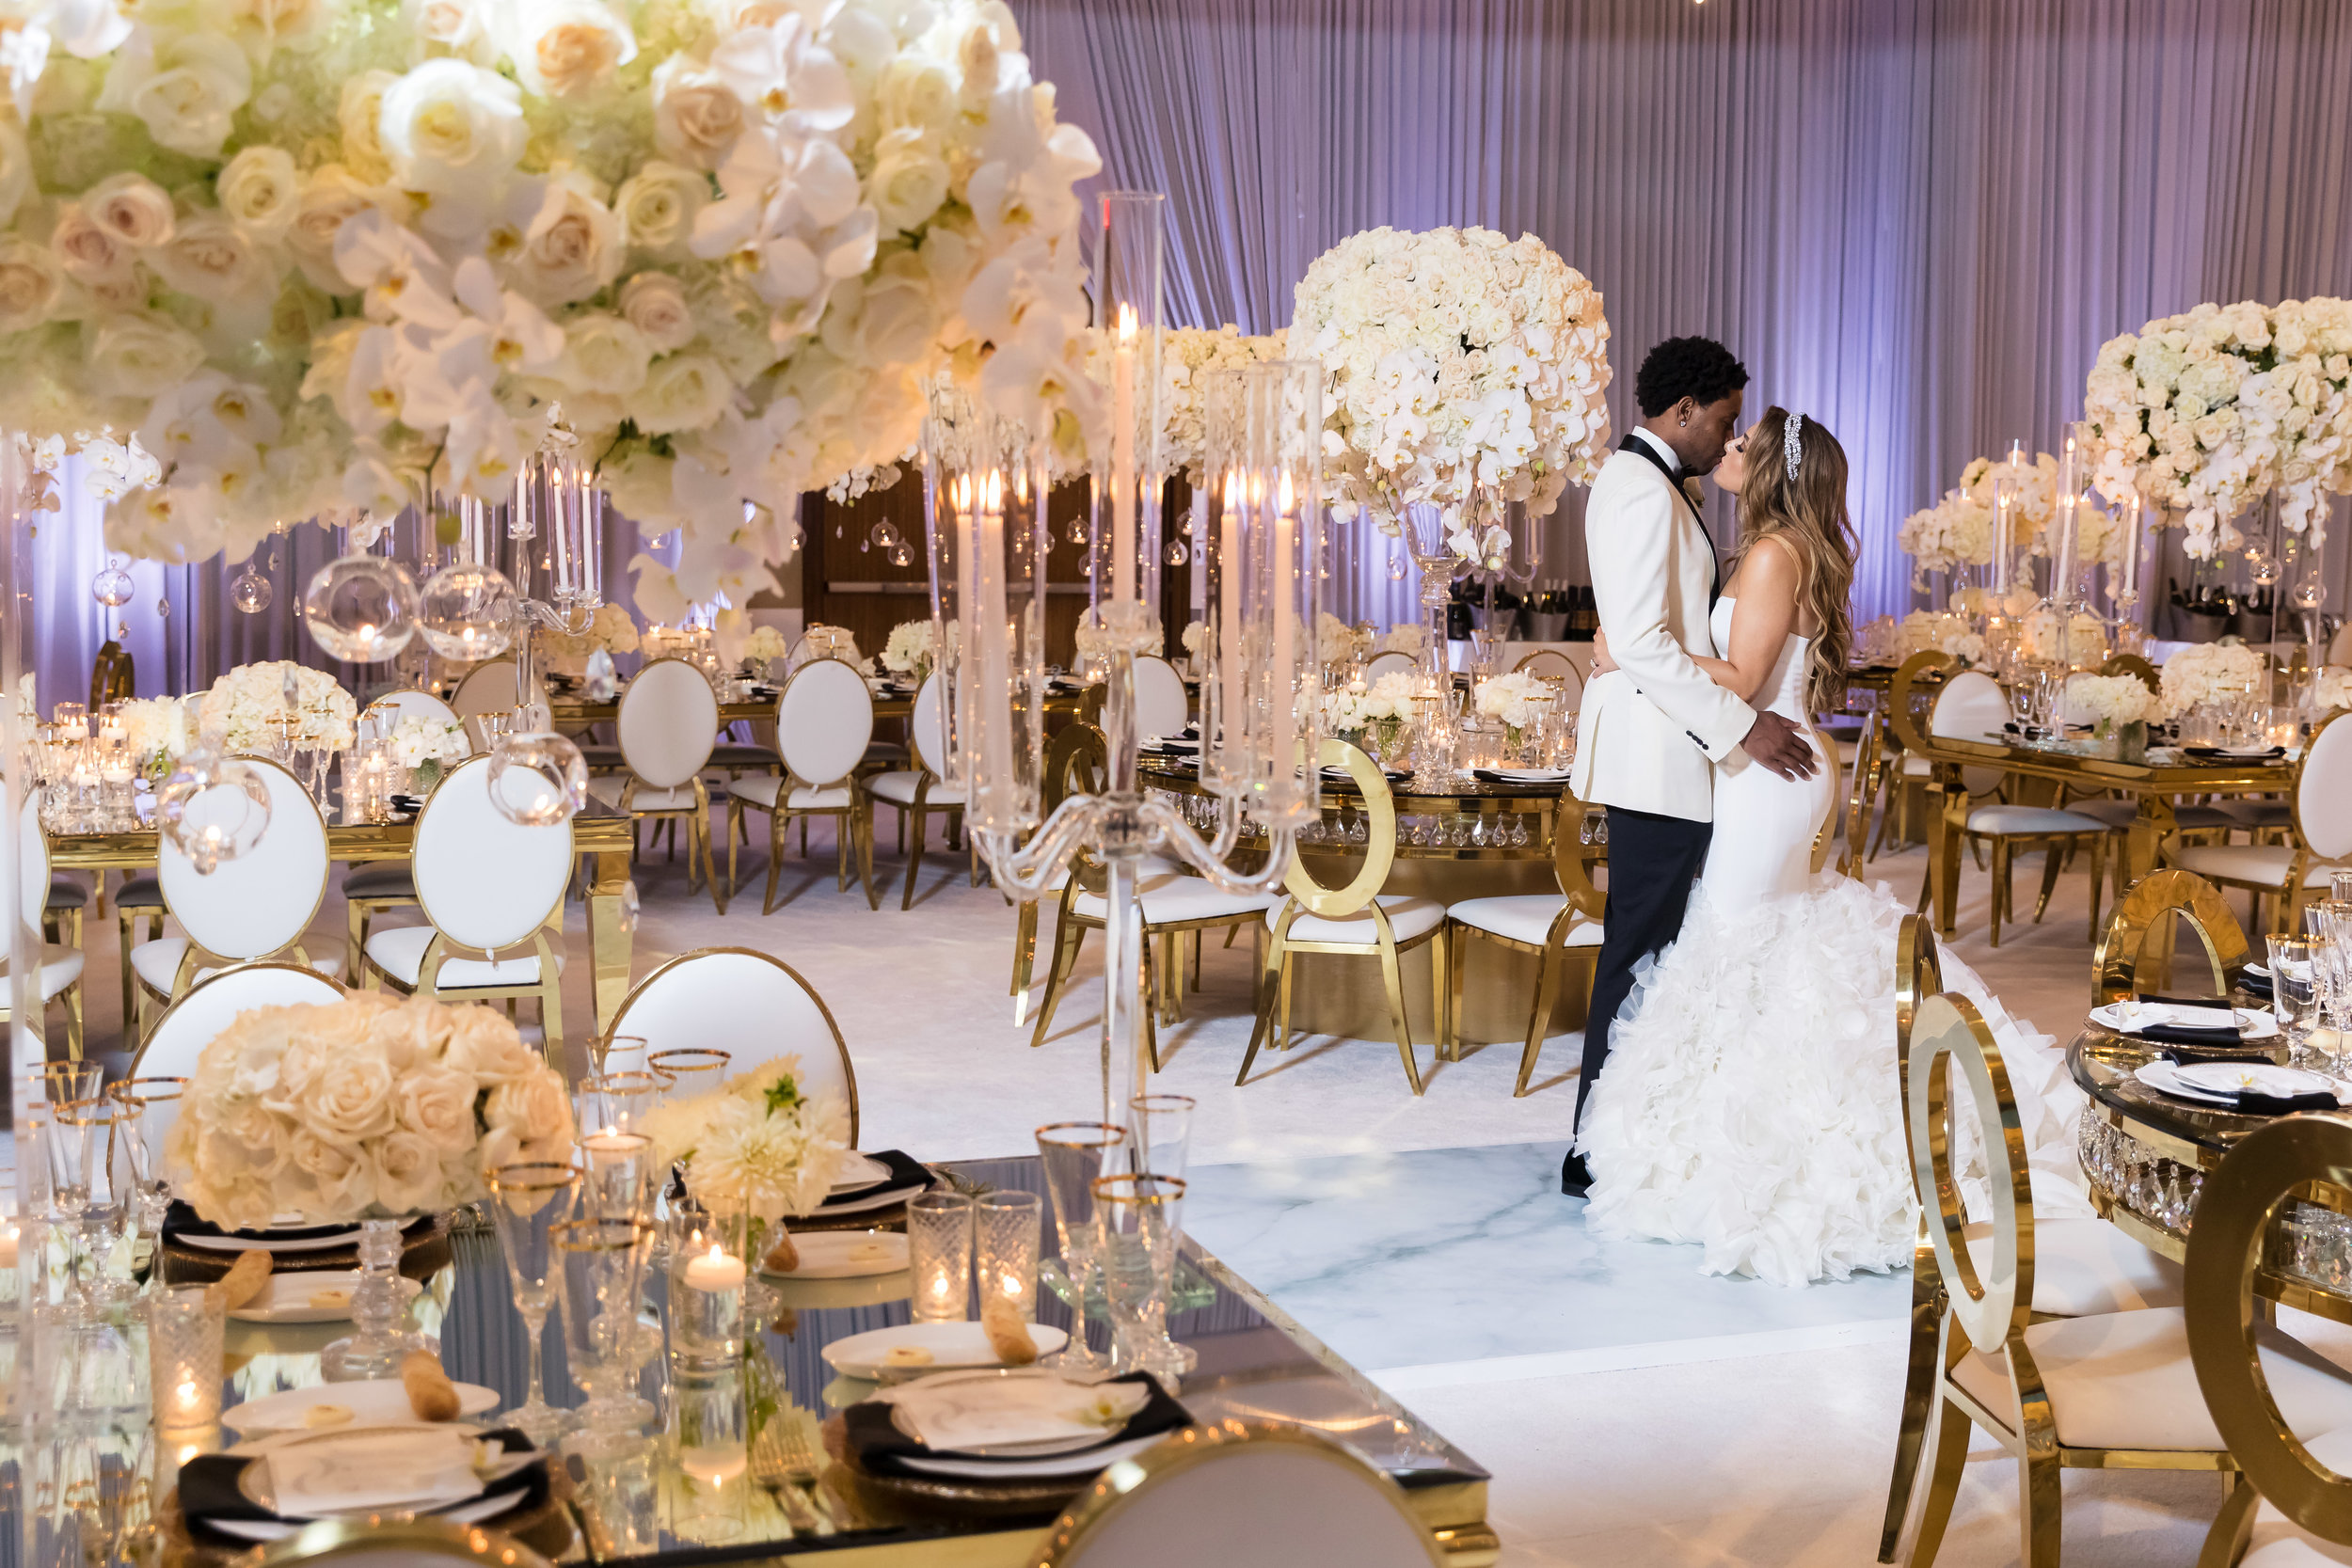 Bride and groom in the middle of their luxe white wedding reception.  Designed and Produced by Las Vegas Wedding Planner Andrea Eppolito. Images by Brian Leahy.